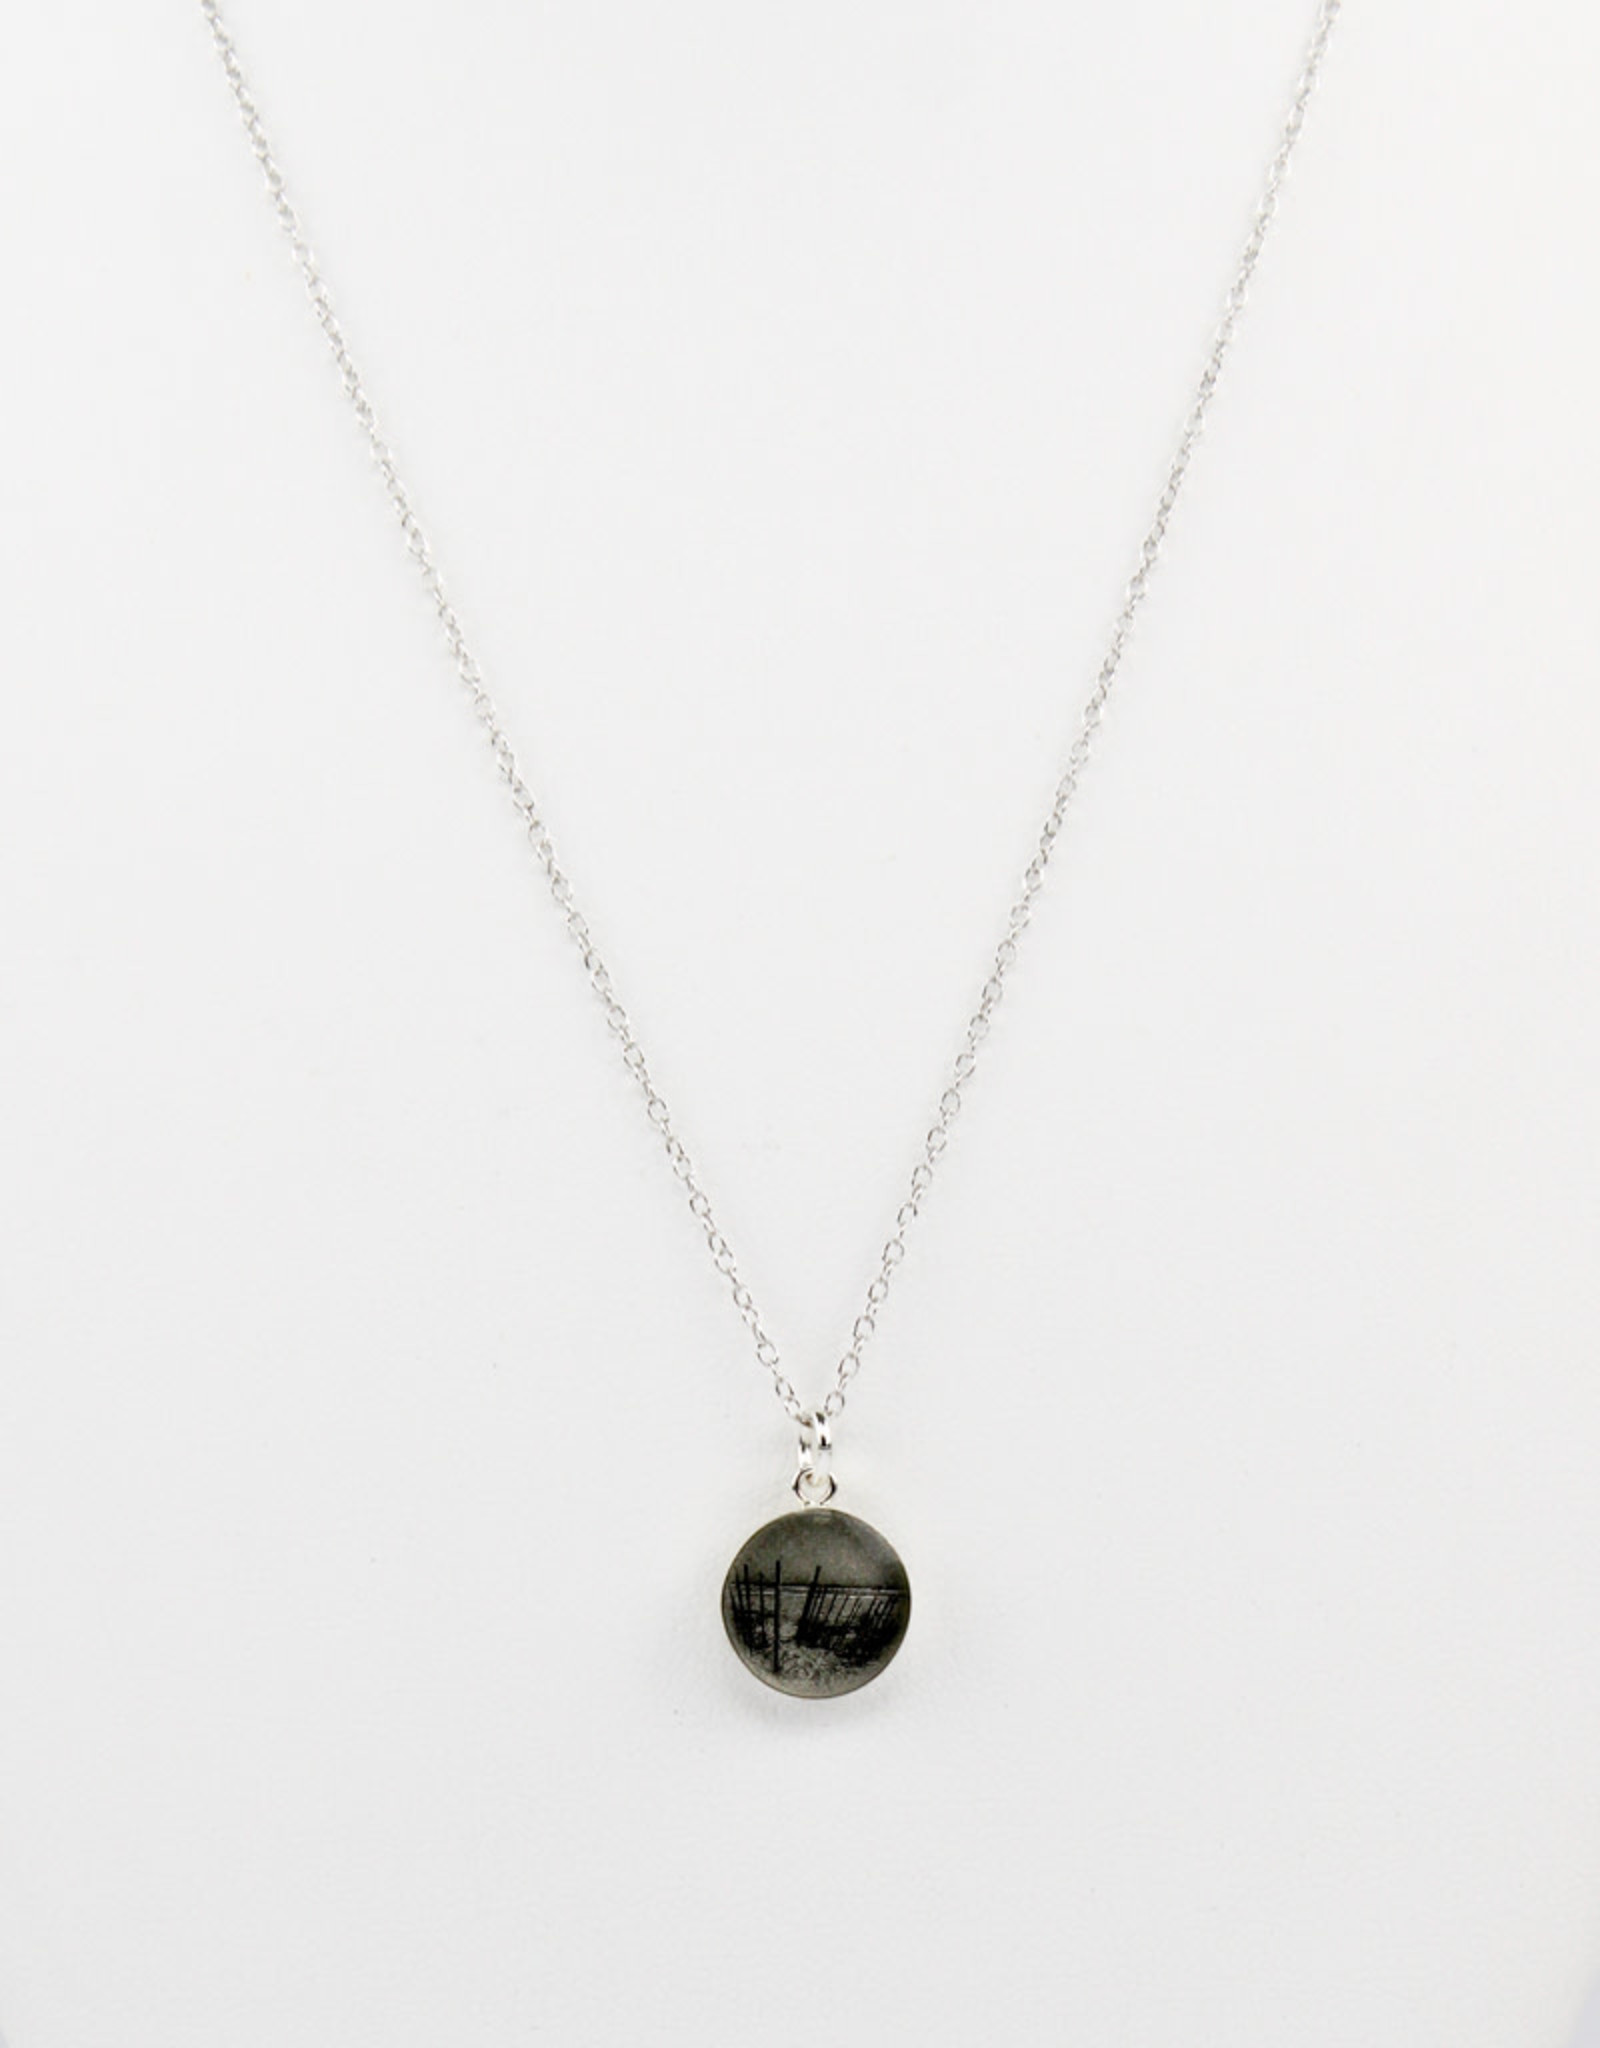 Everyday Artifacts Oceanfront Necklace